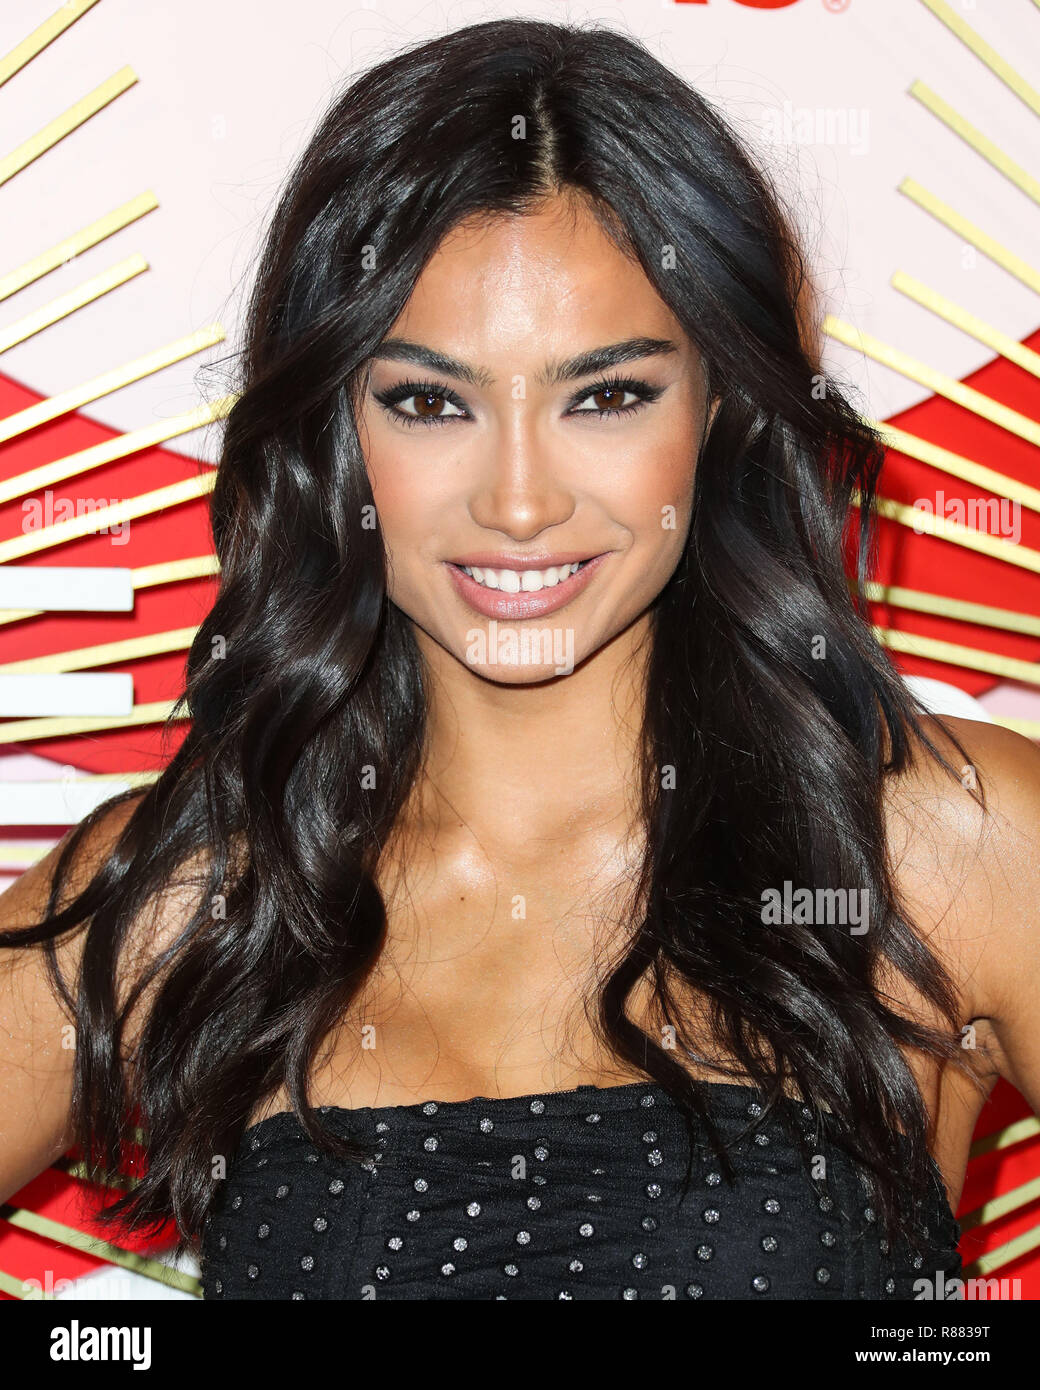 Young Kelly Gale nudes (99 photos), Tits, Cleavage, Feet, bra 2017